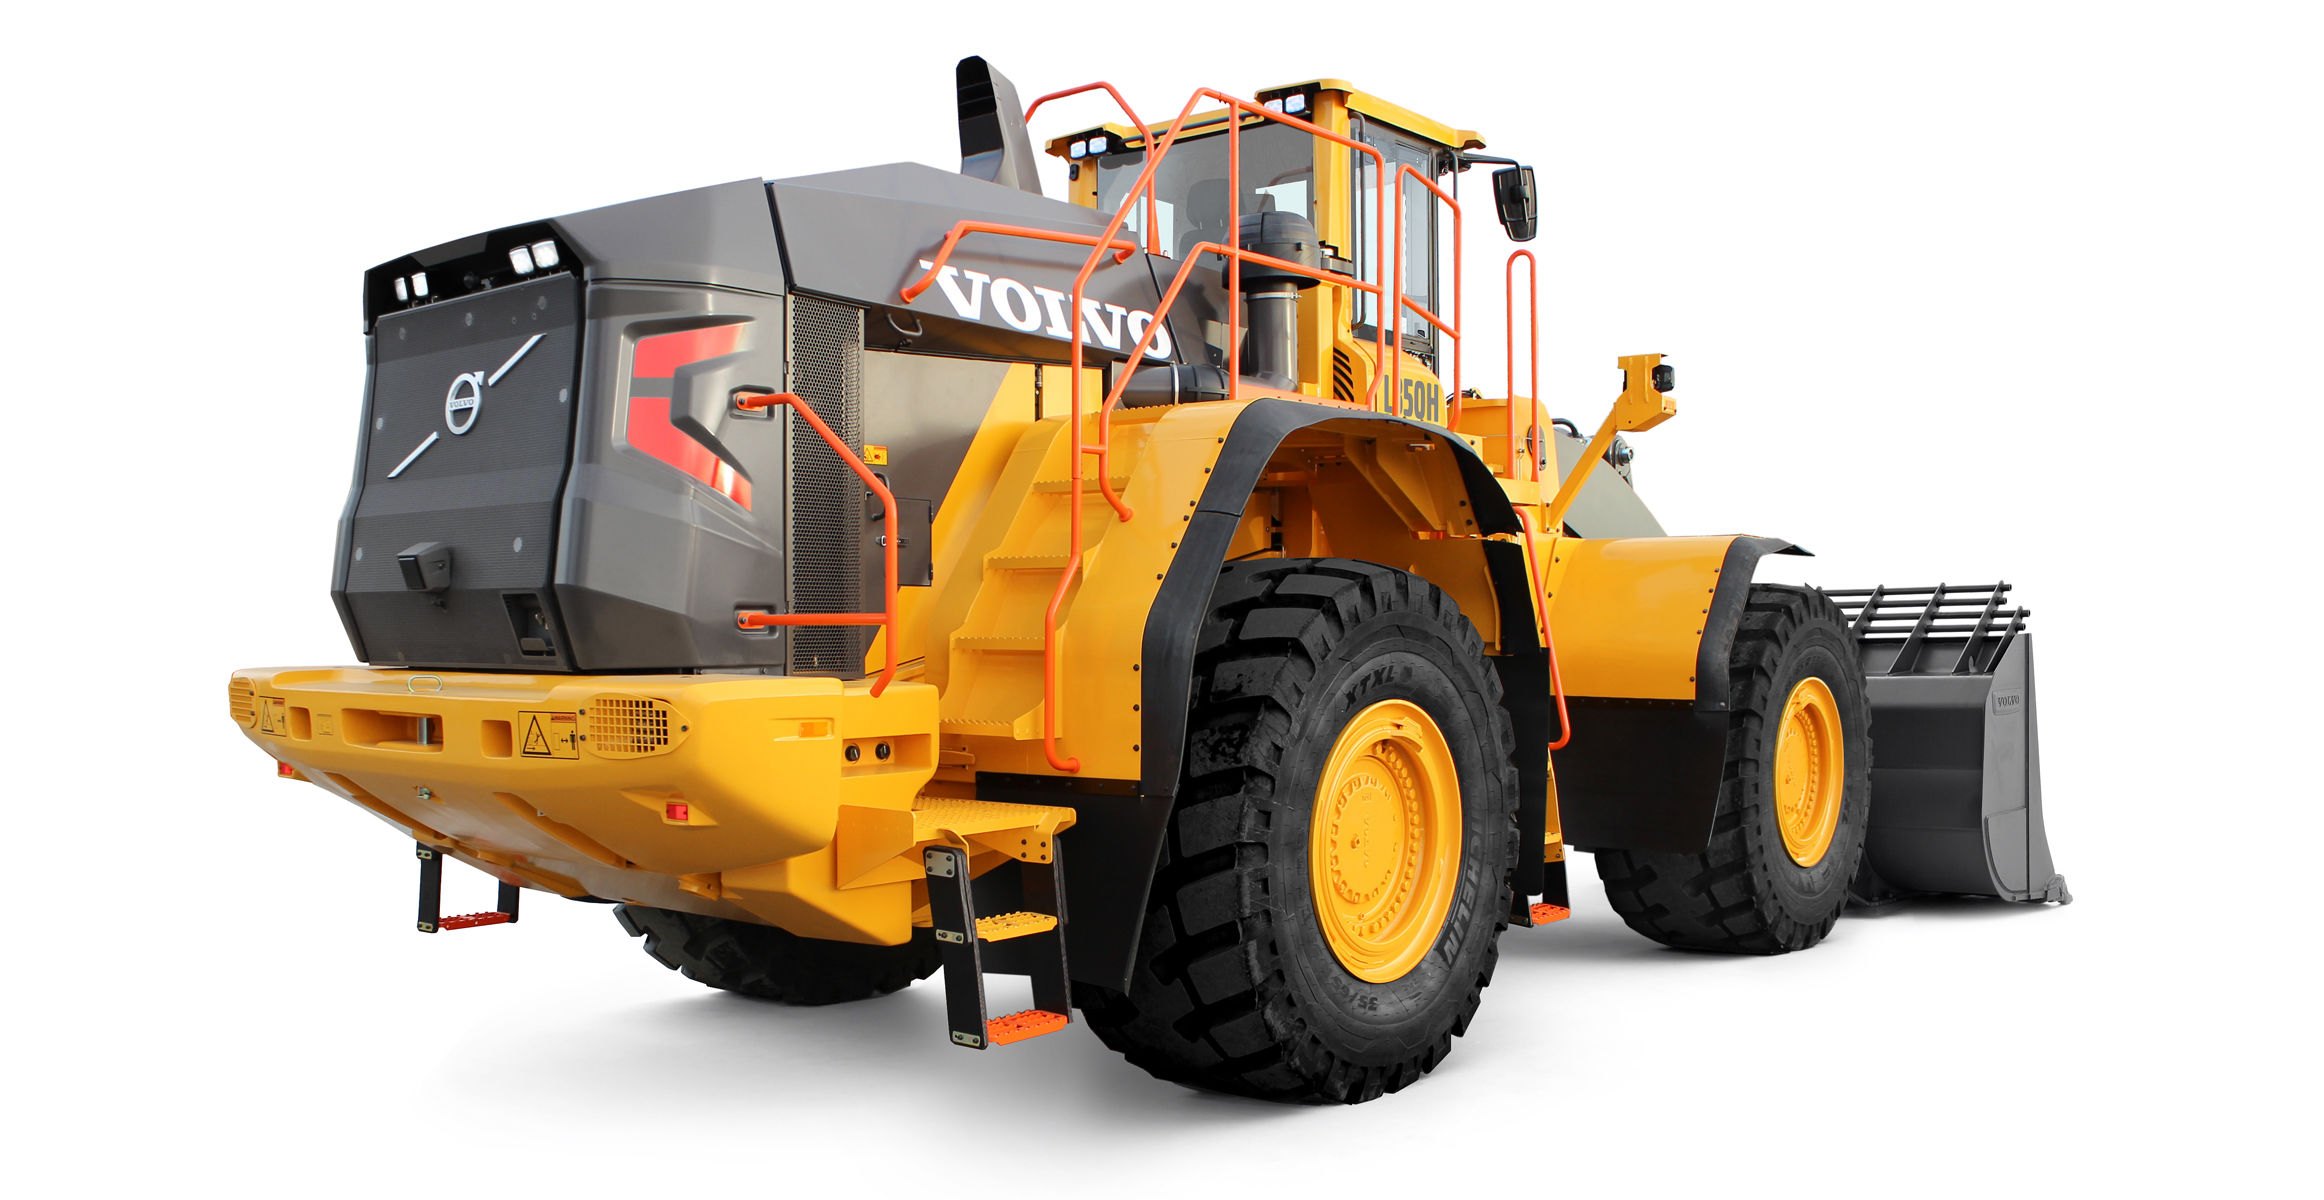 Volvo CE reveals latest technology in redesigned L350H front end loader